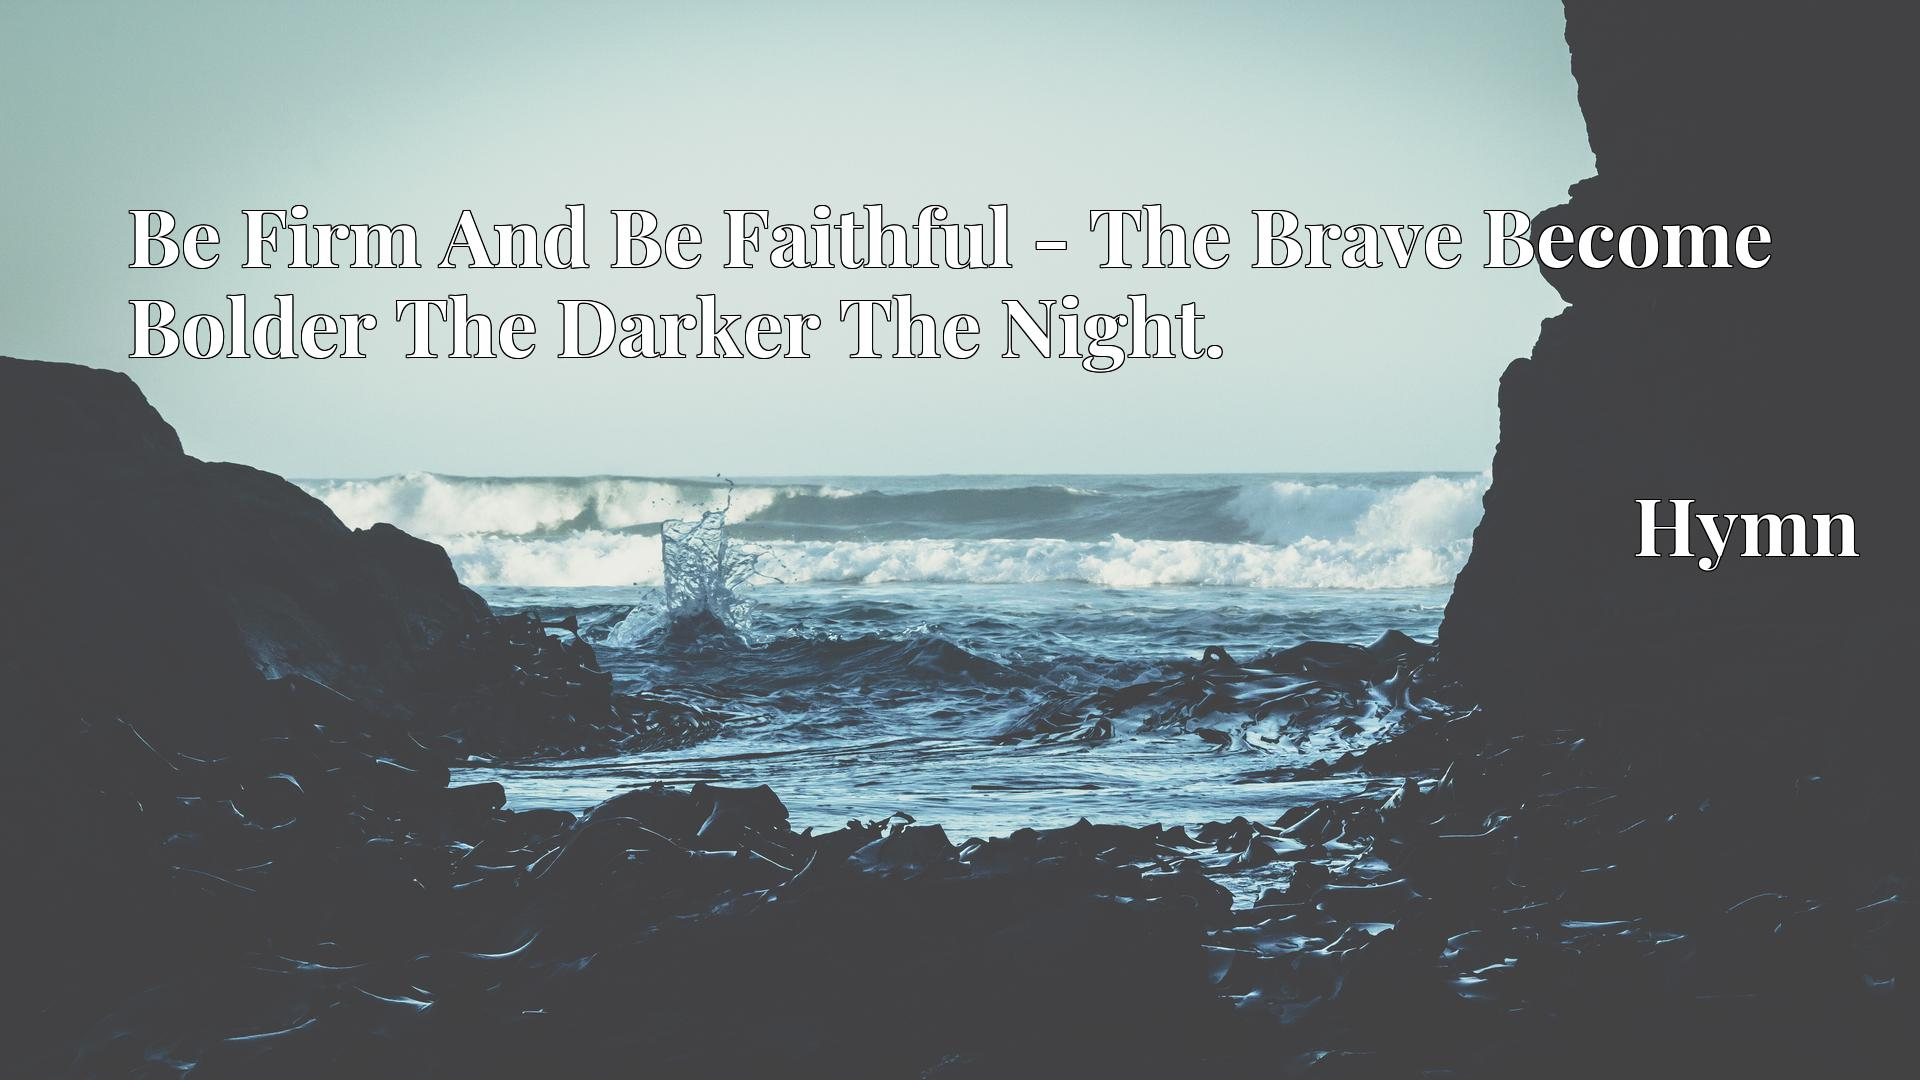 Be Firm And Be Faithful - The Brave Become Bolder The Darker The Night. - Hymn